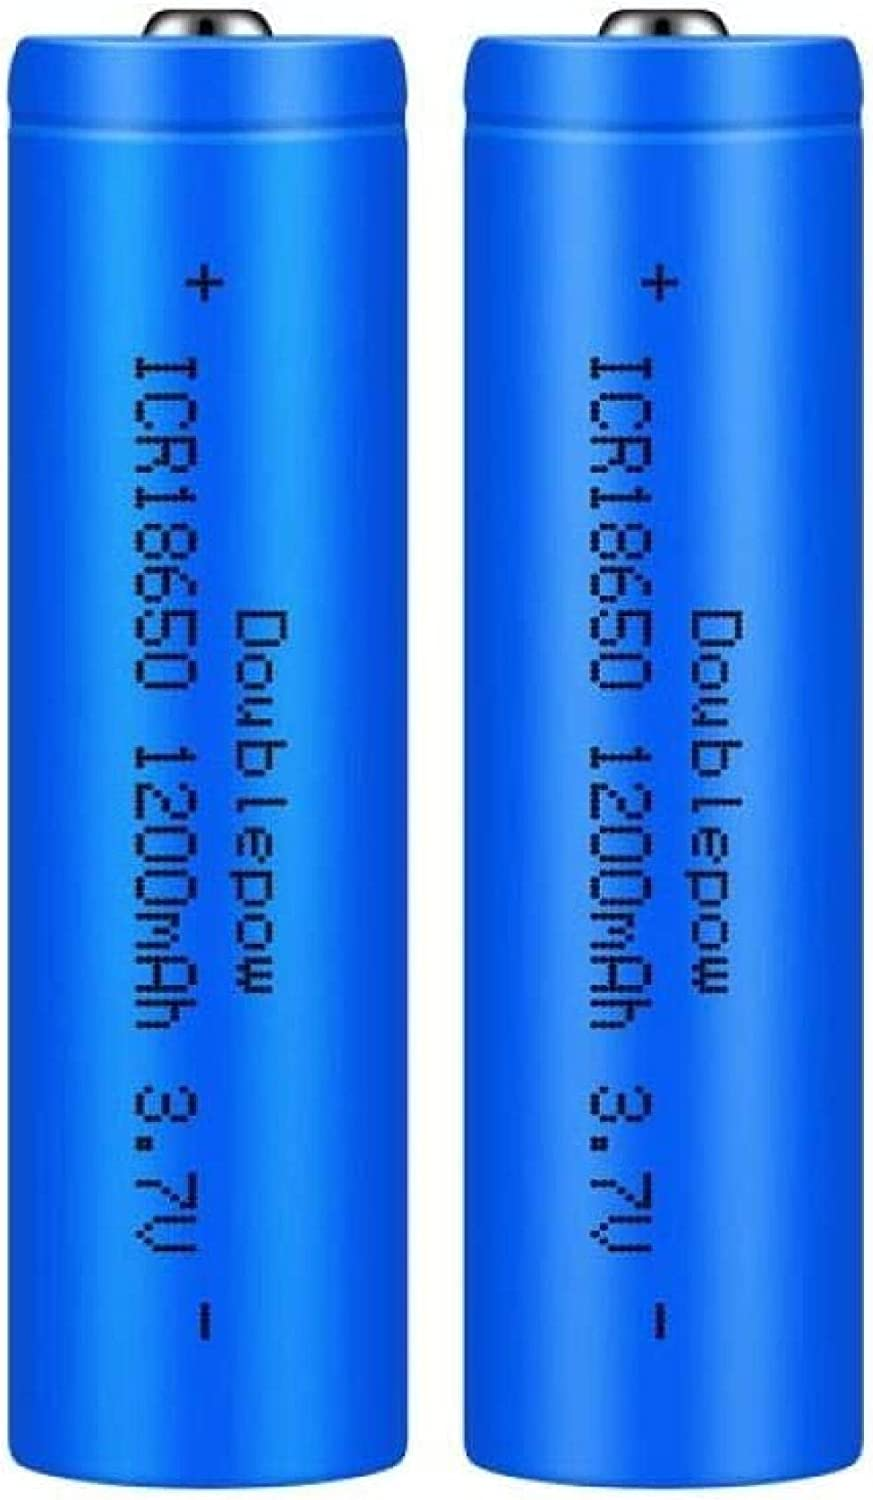 1200mAh We Sales of SALE items from new works OFFer at cheap prices 3.7V 18650 Rechargeable Battery Batteries- Lithium